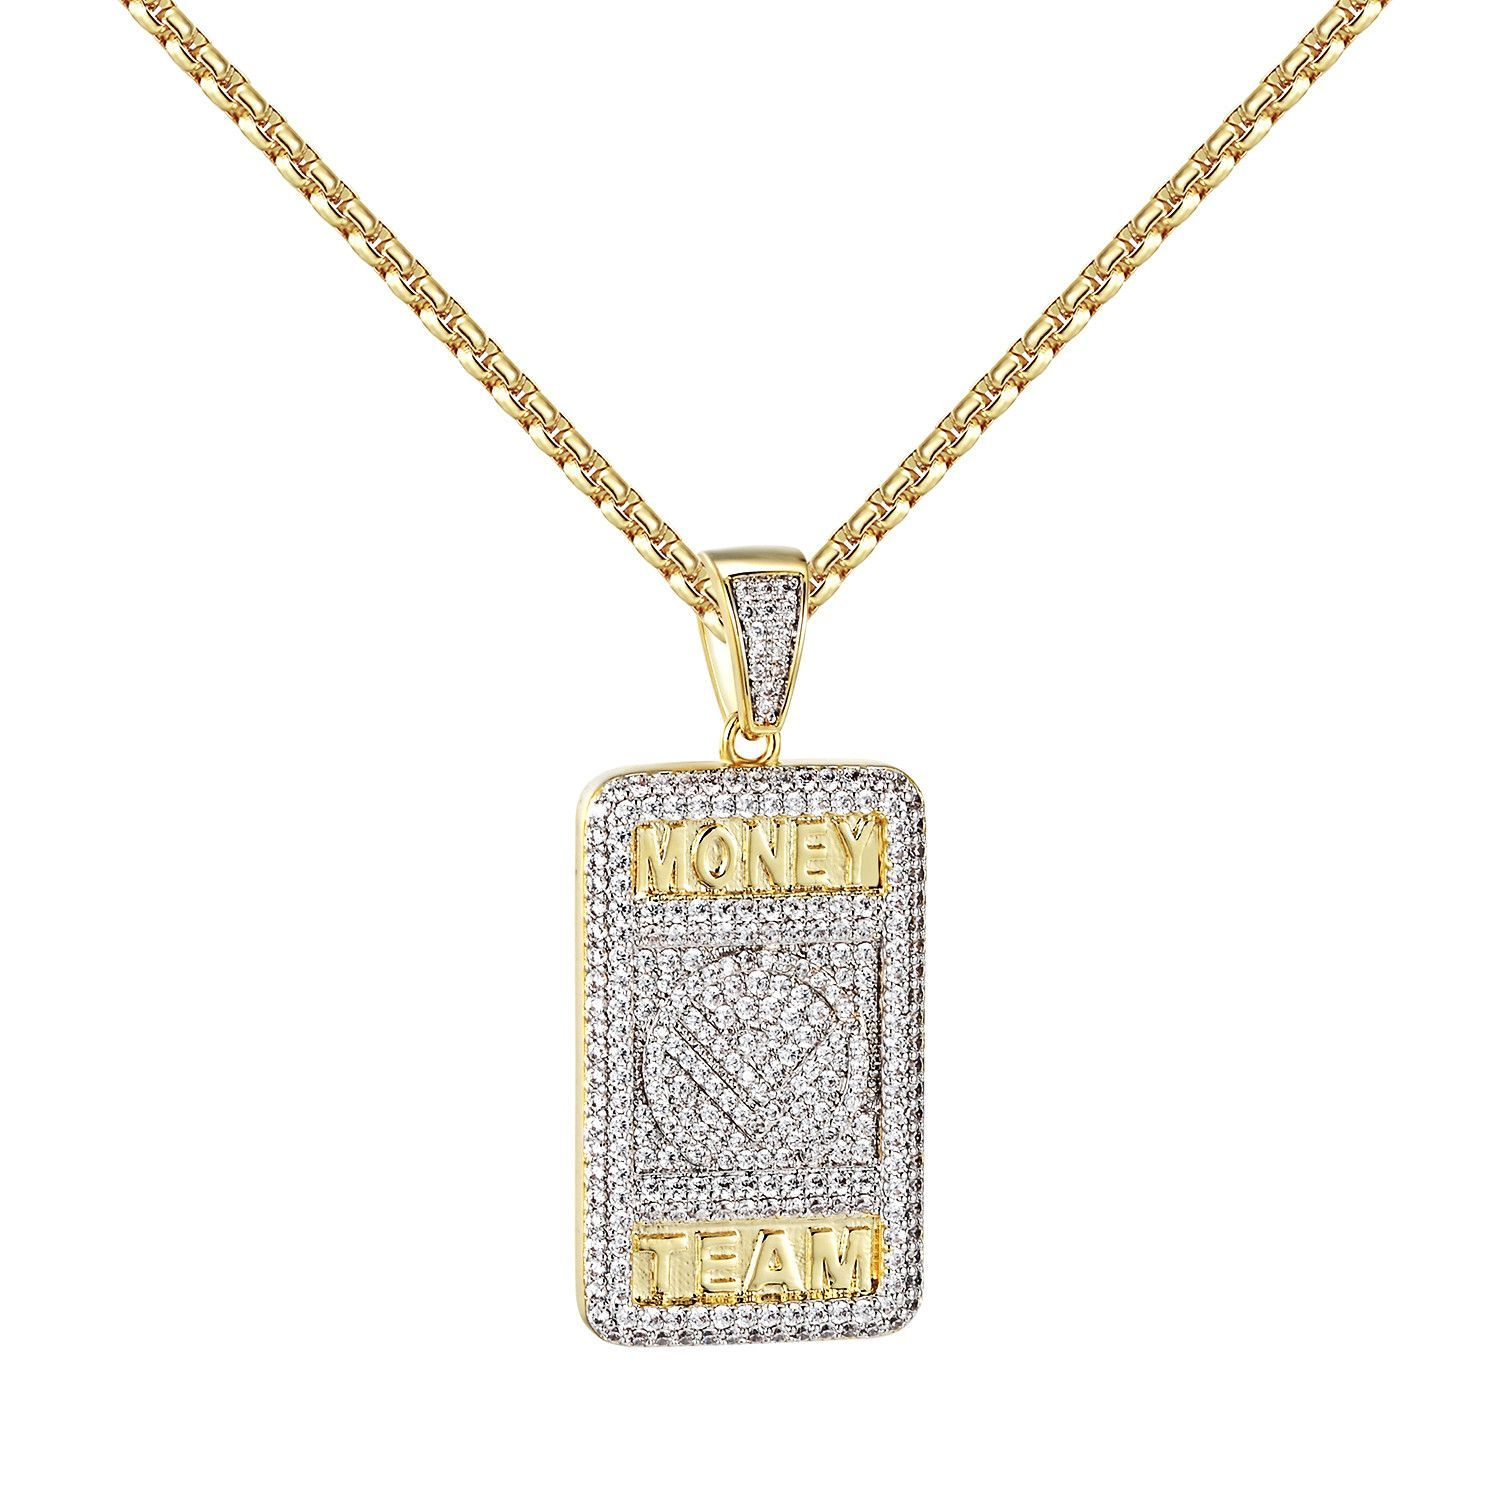 b9ff7488fed4 Money Team Dog Tag Pendant 14k Gold Finish Simulated Diamonds Chain Hip Hop